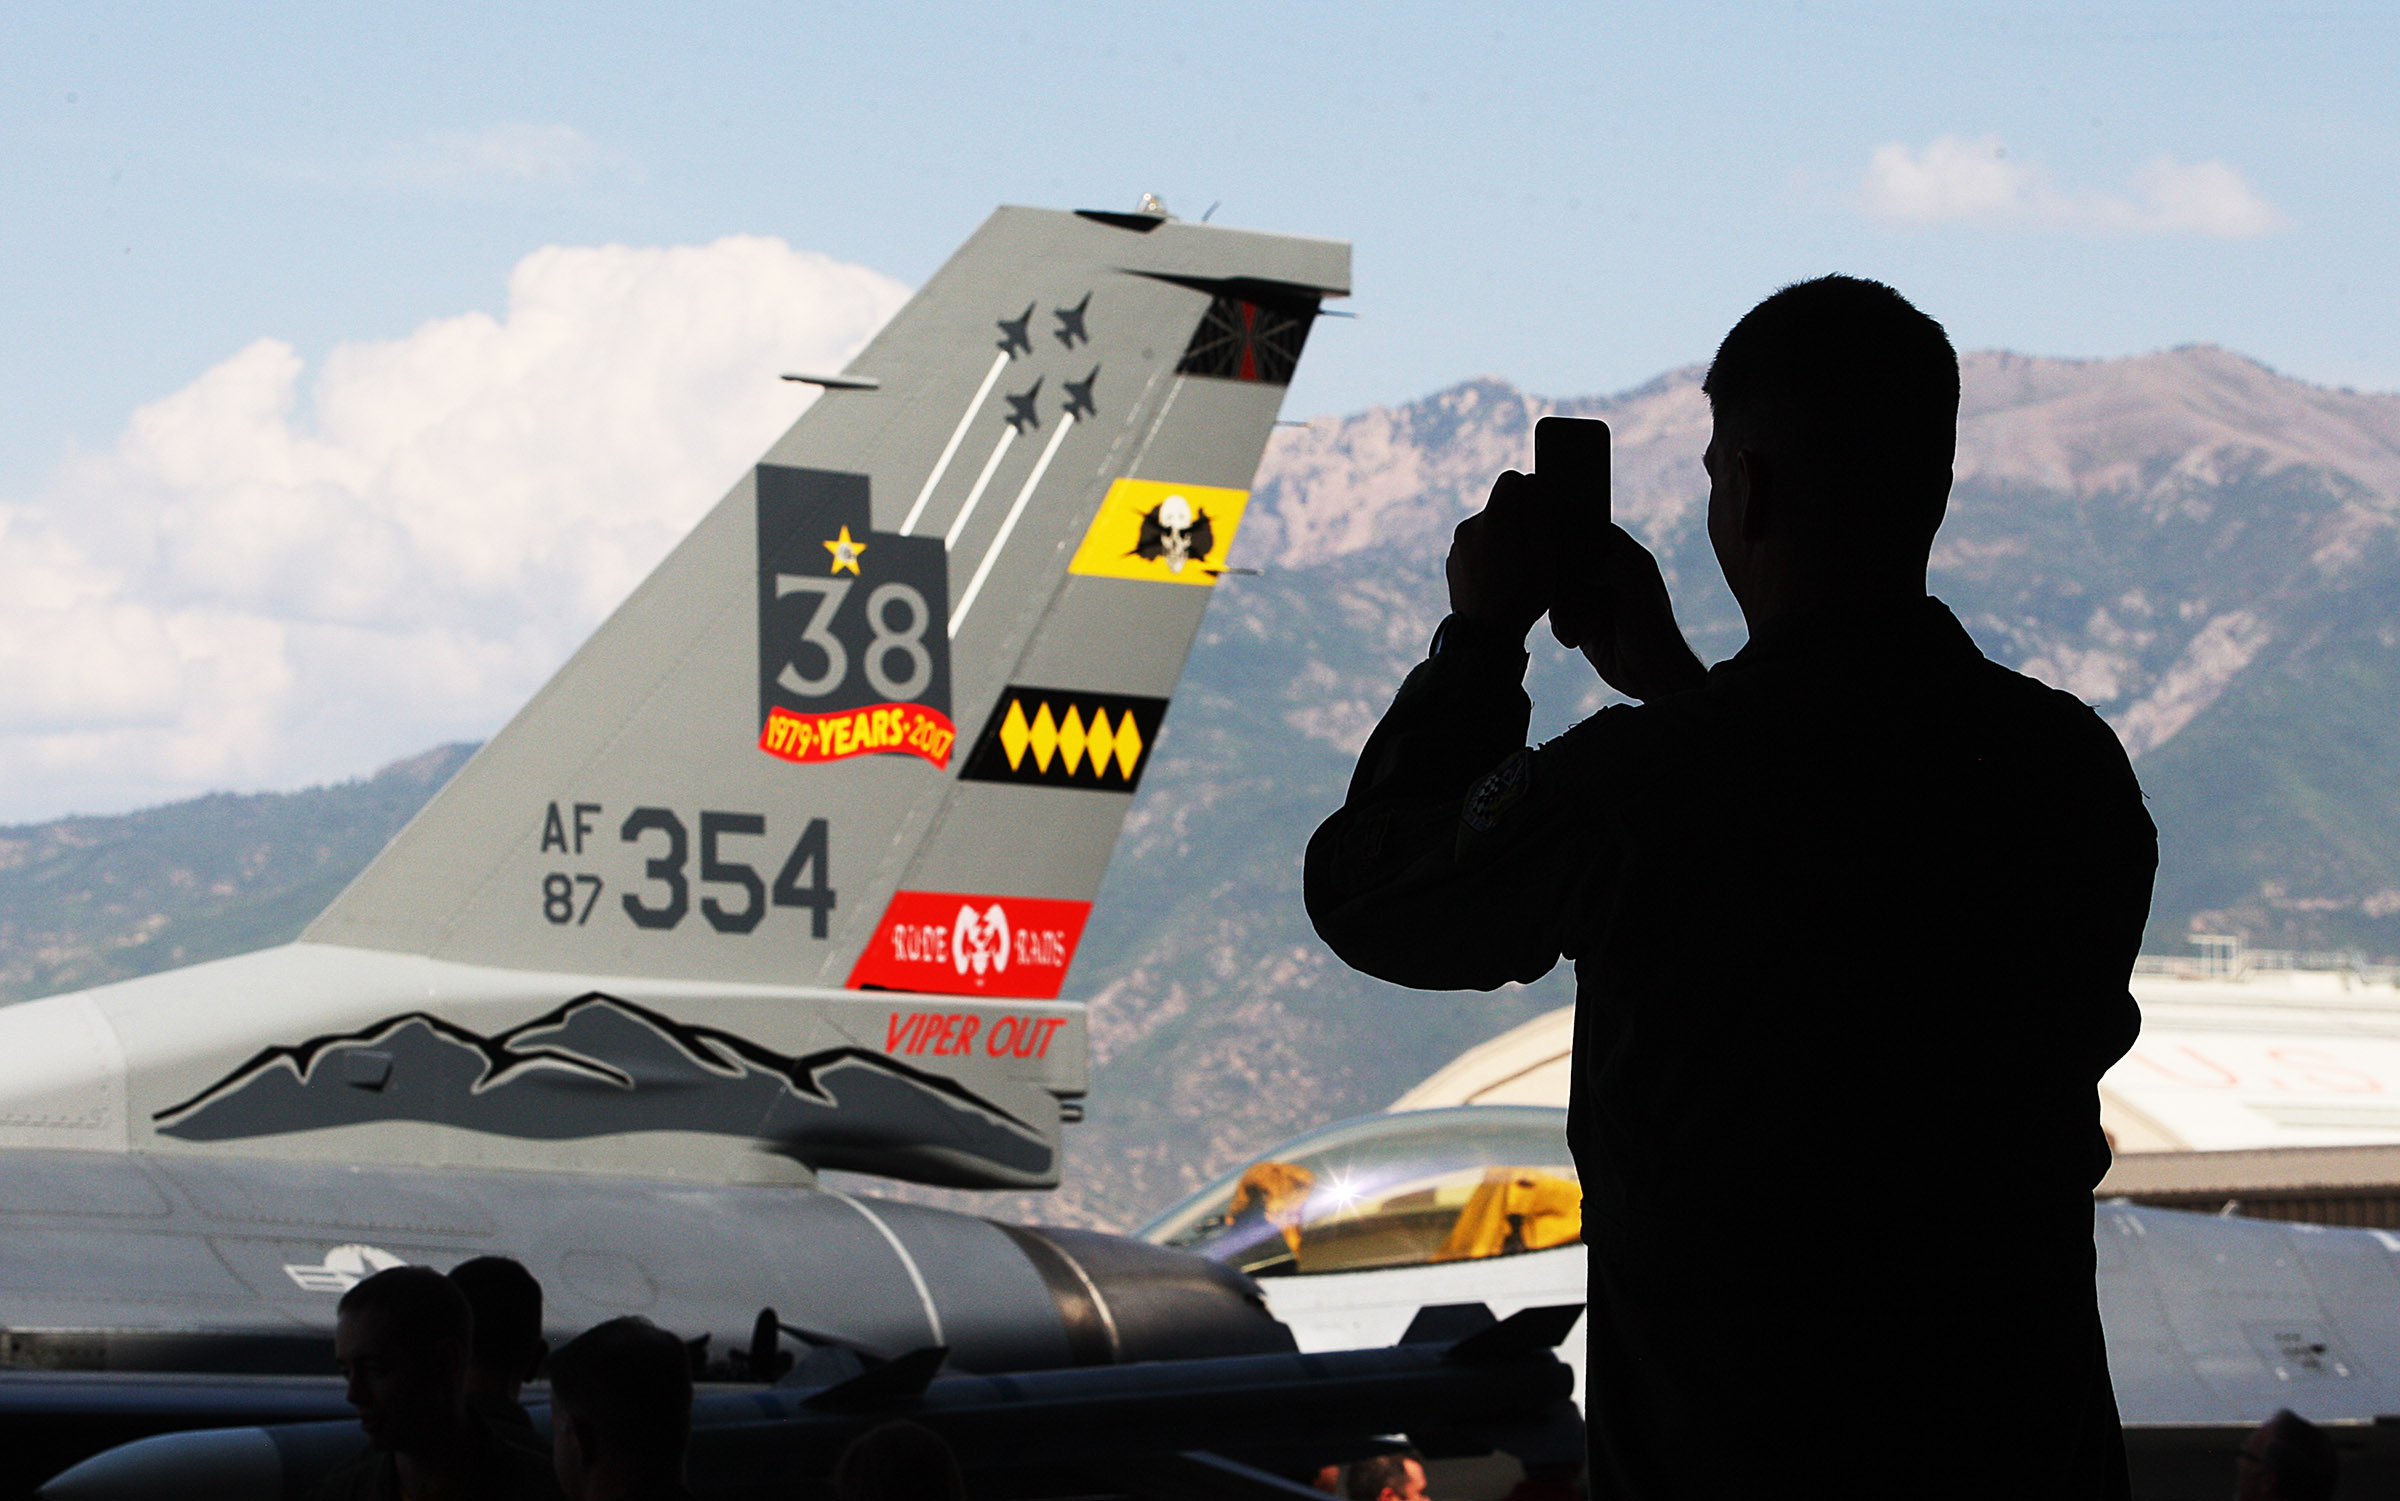 F-16 pilot Maj. Scott Laroche takes a photo of one of the planes as Hill Air Force Base bids farewell to the F-16 at Viper Out ceremony on base. The 388th and 419th fighter wings at Hill AFB bid farewell to the F-16 Fighting Falcon during a ceremony on Friday, Sept. 8, 2017.